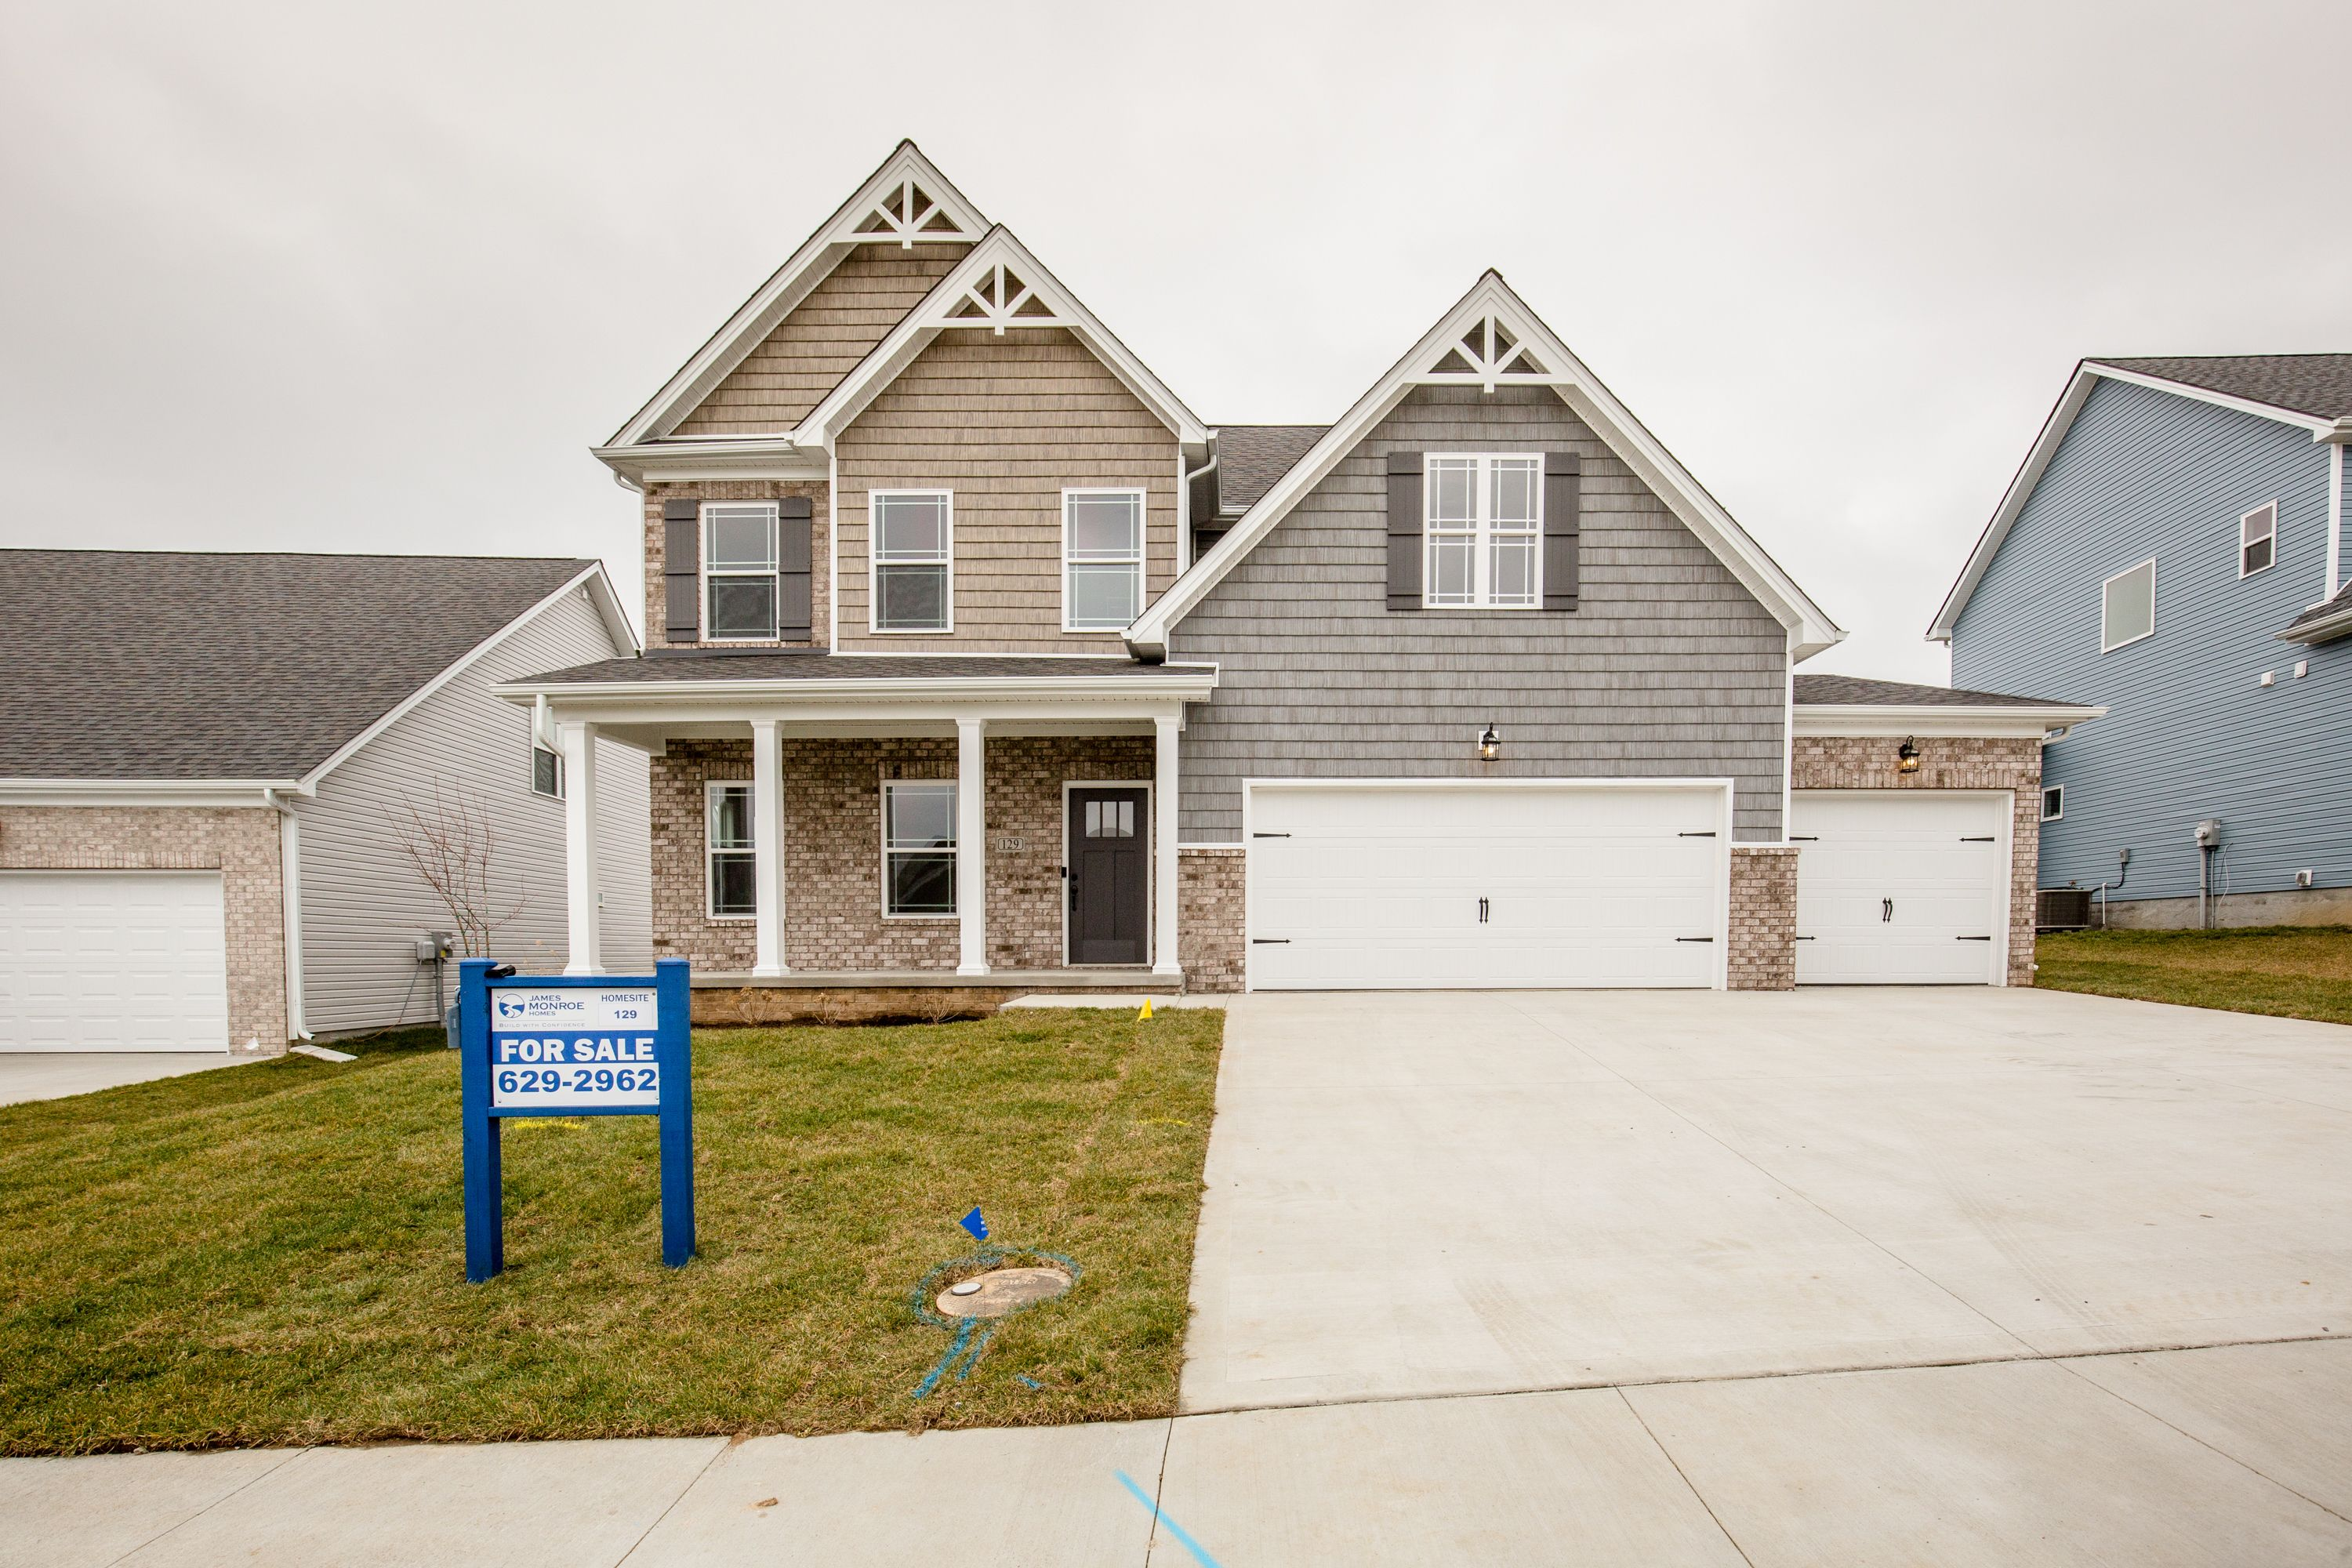 'Eastgate' by James Monroe Homes in Lexington